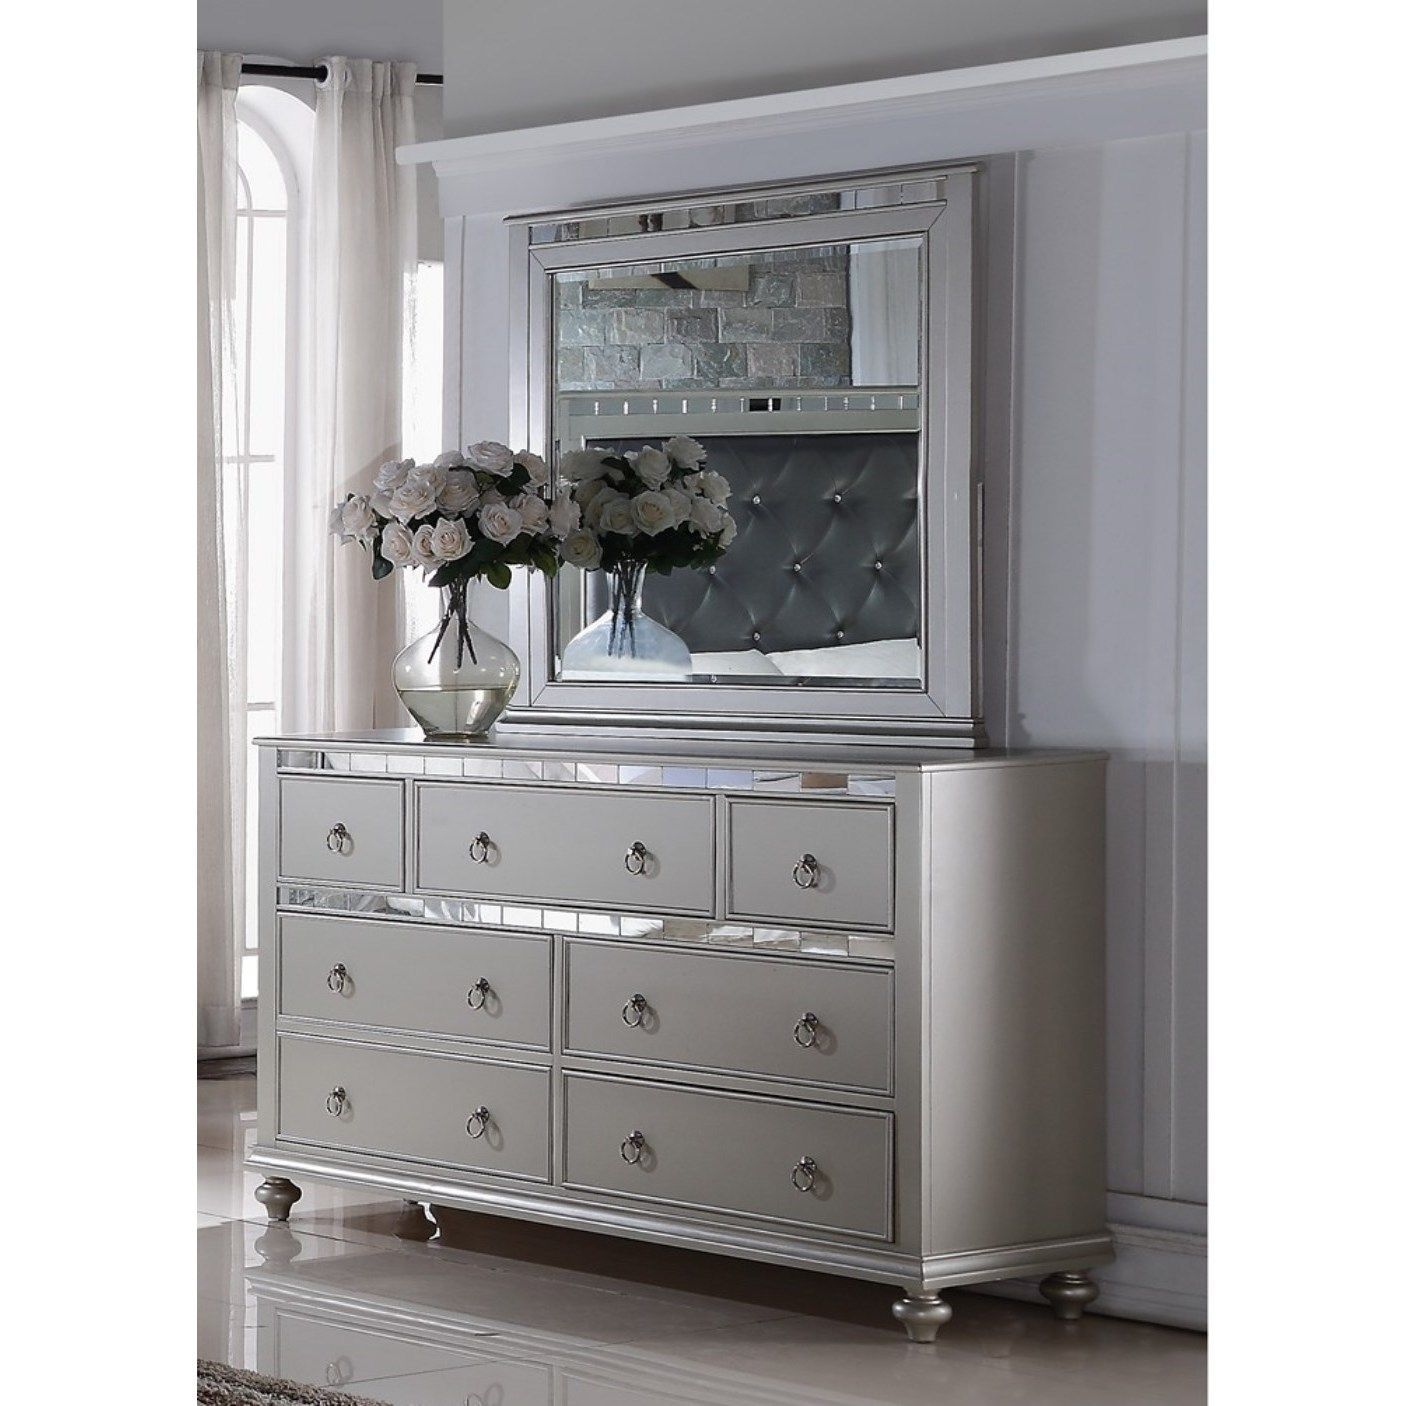 Our best bedroom furniture deals lyke home nevaeh silver dresser mirror combo nevaeh silver dresser mirror combo size 7 drawer